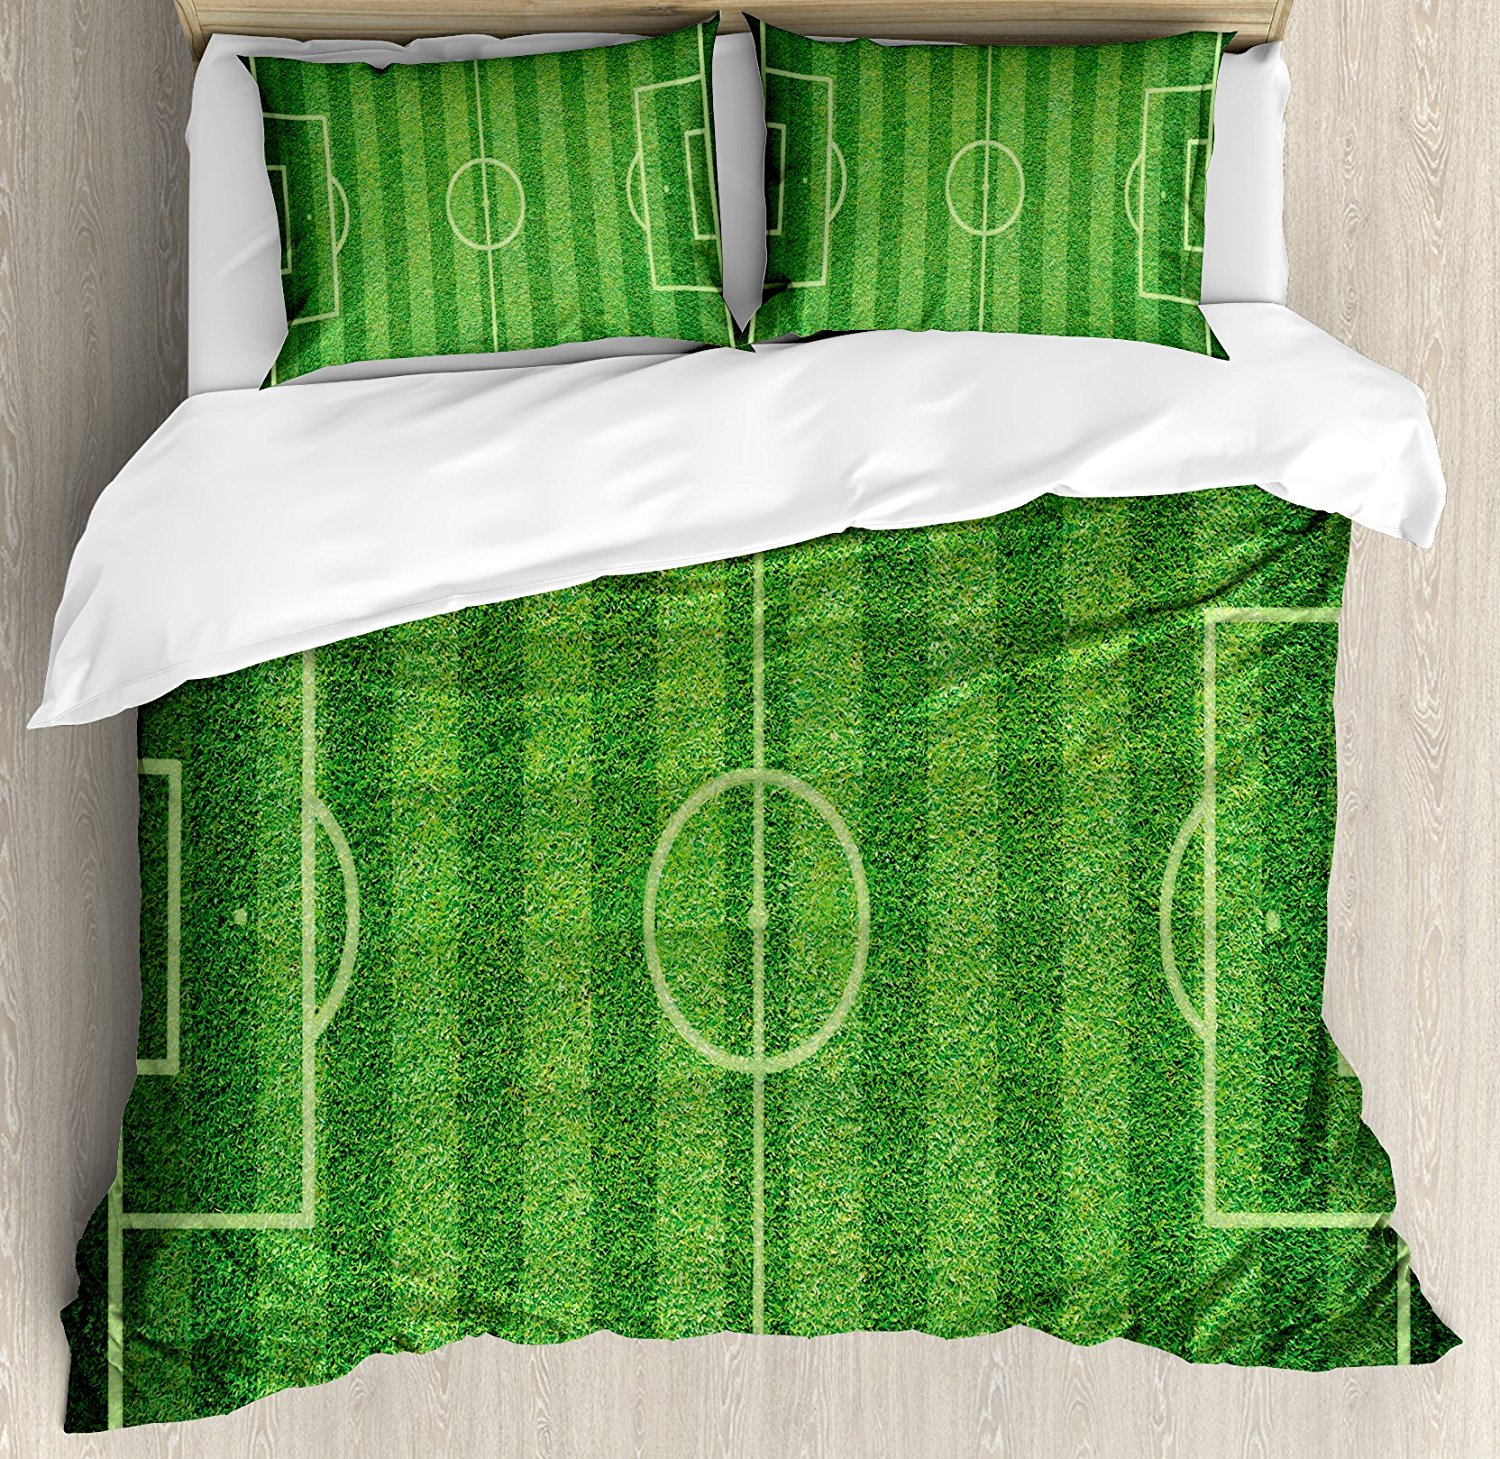 Boys Room Duvet Cover Set Realistic Green Grass Soccer Field Sports Hobby Competition Field 4 Piece Bedding Set Lime Green